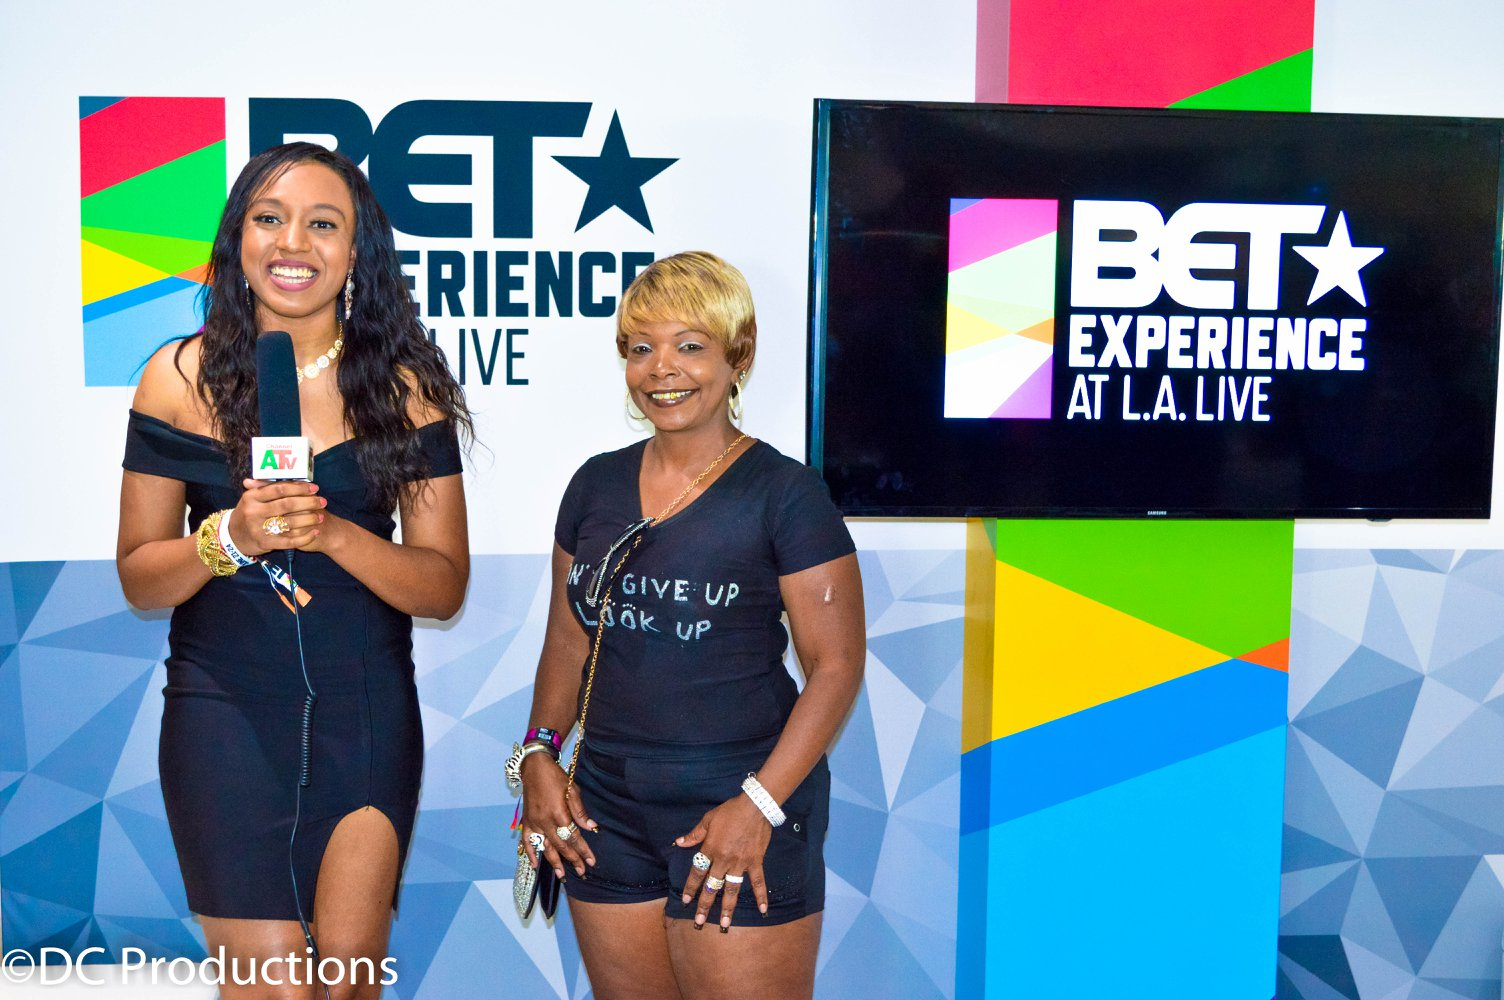 Bet experience live on tv wimbledon 2021 betting preview nfl